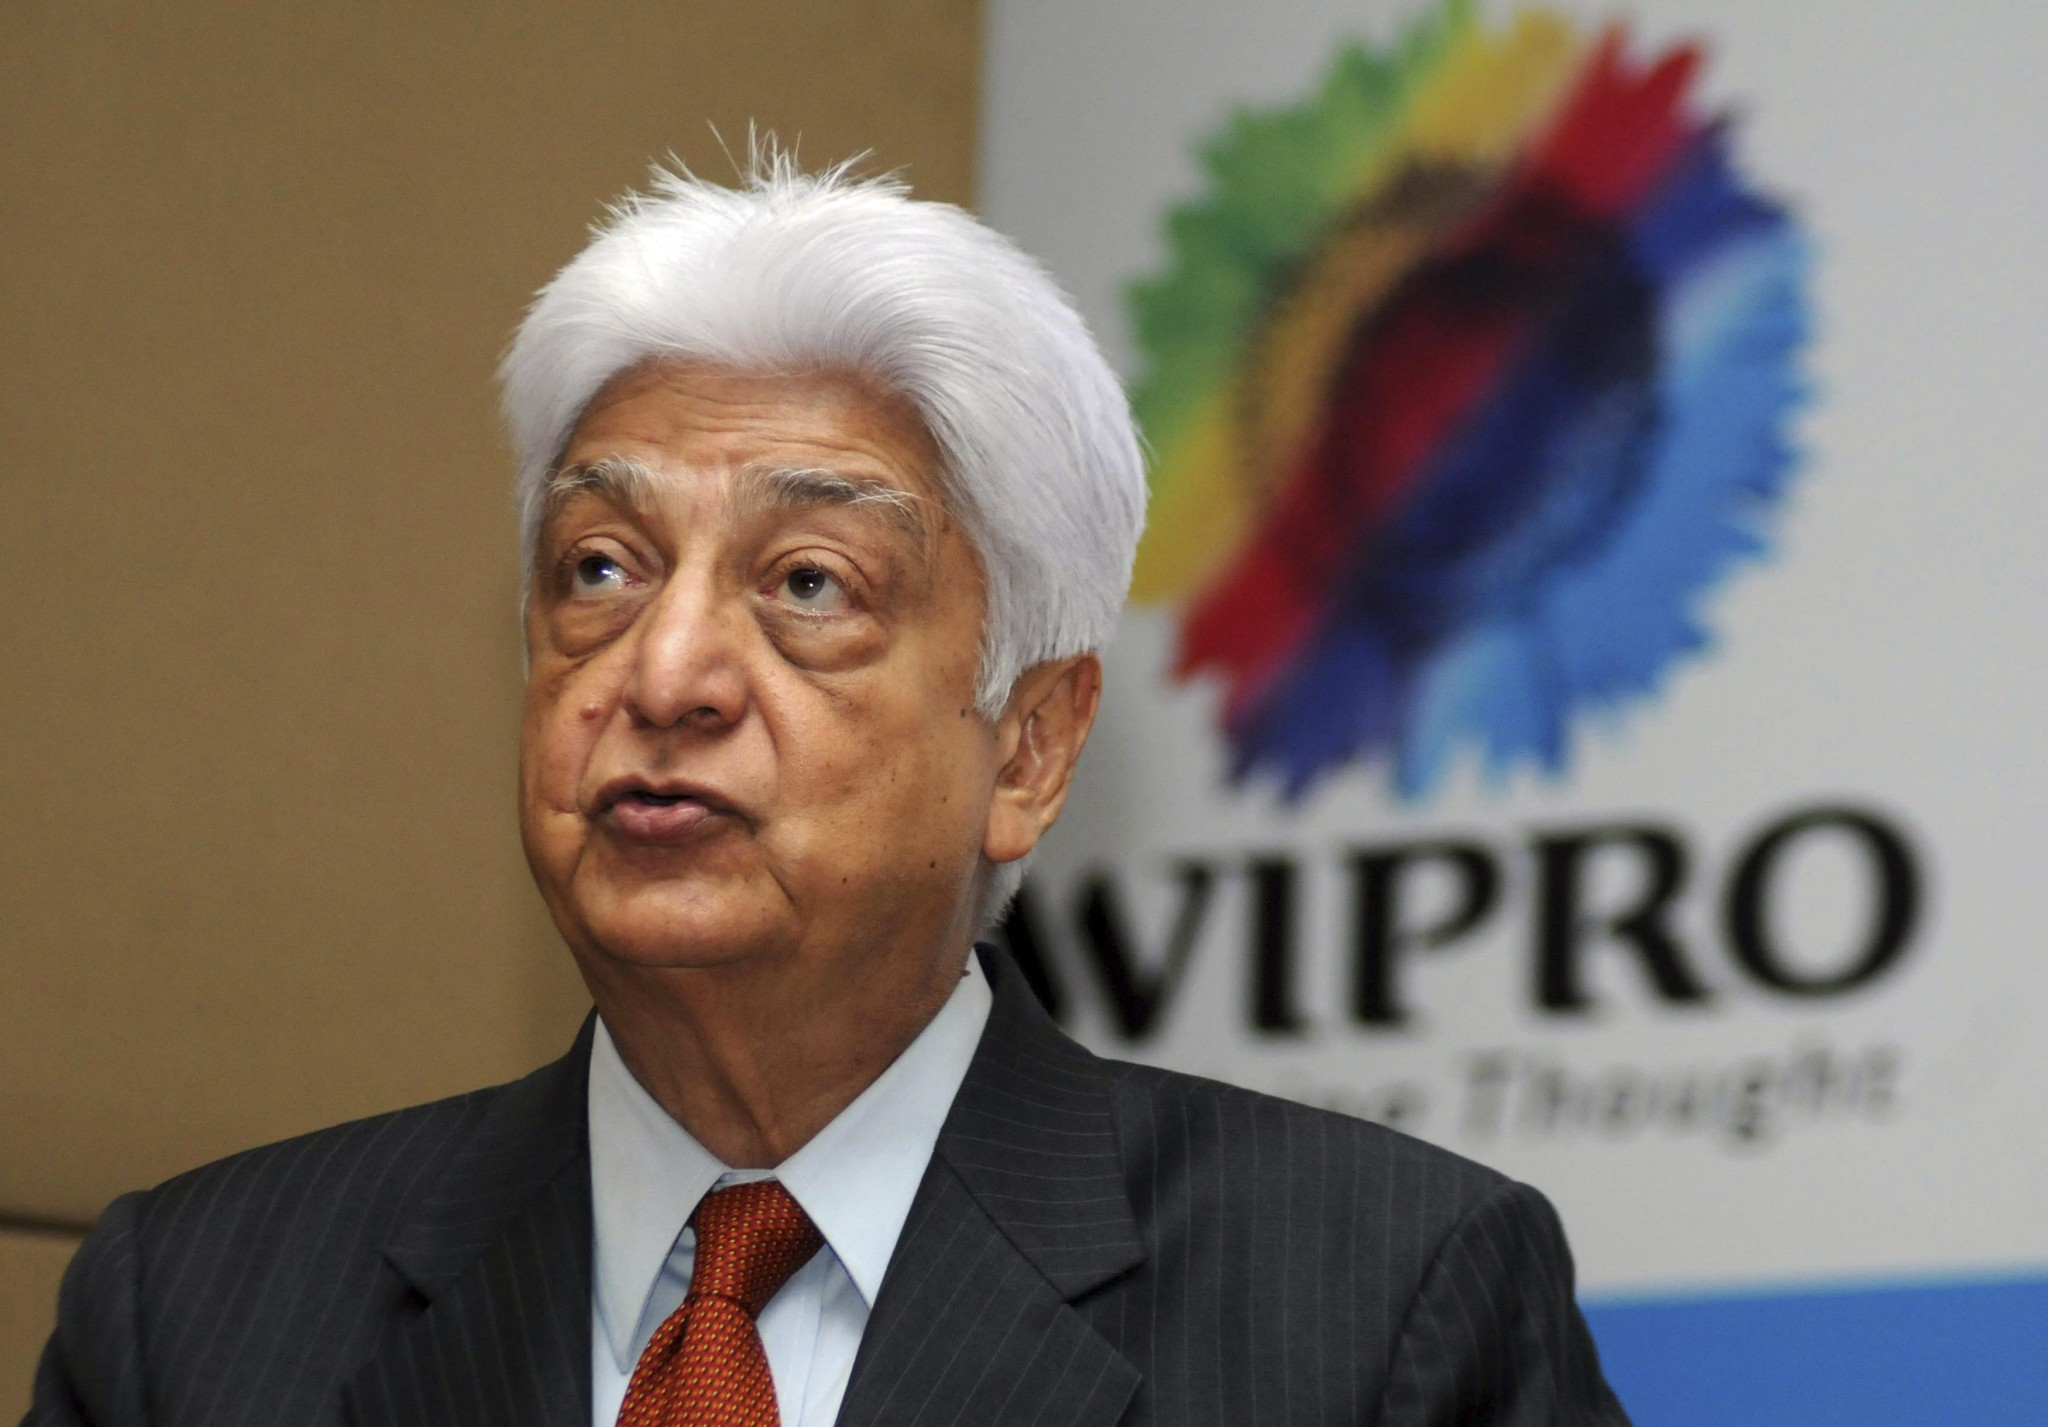 When attending RSS event turned into an ugly affair for Wipro Director Azim Premji